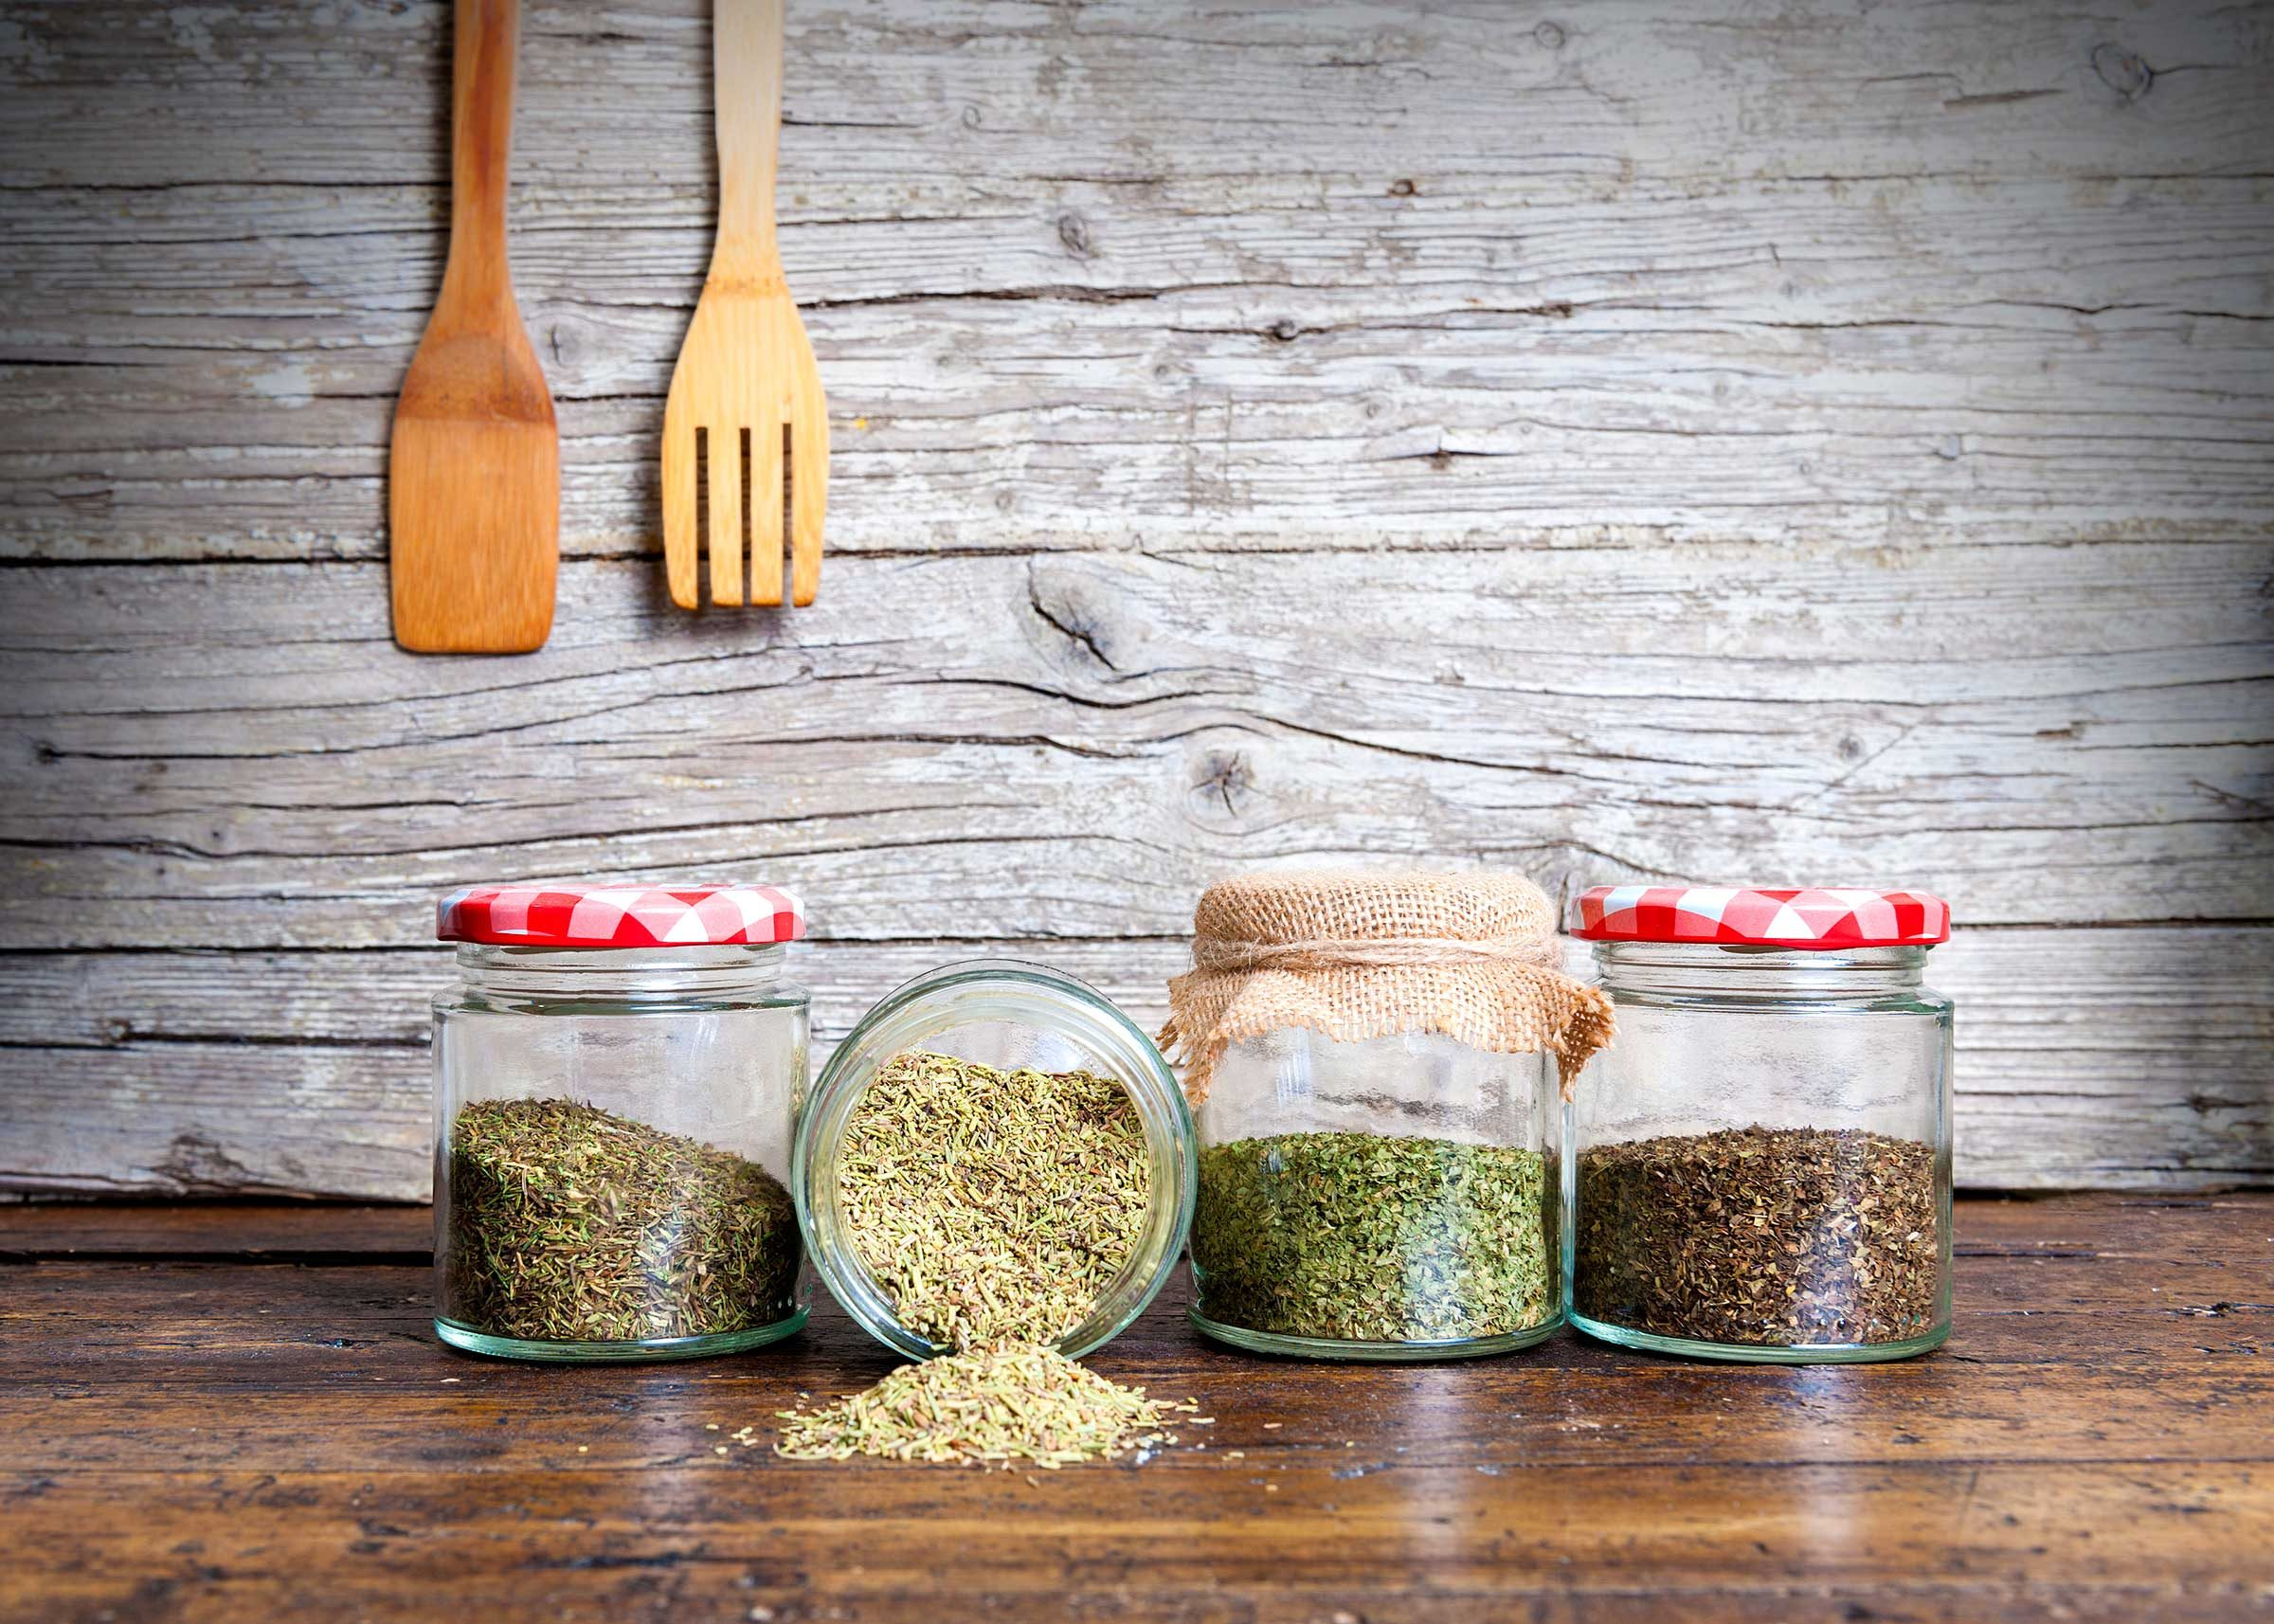 Store food in pest-proof containers